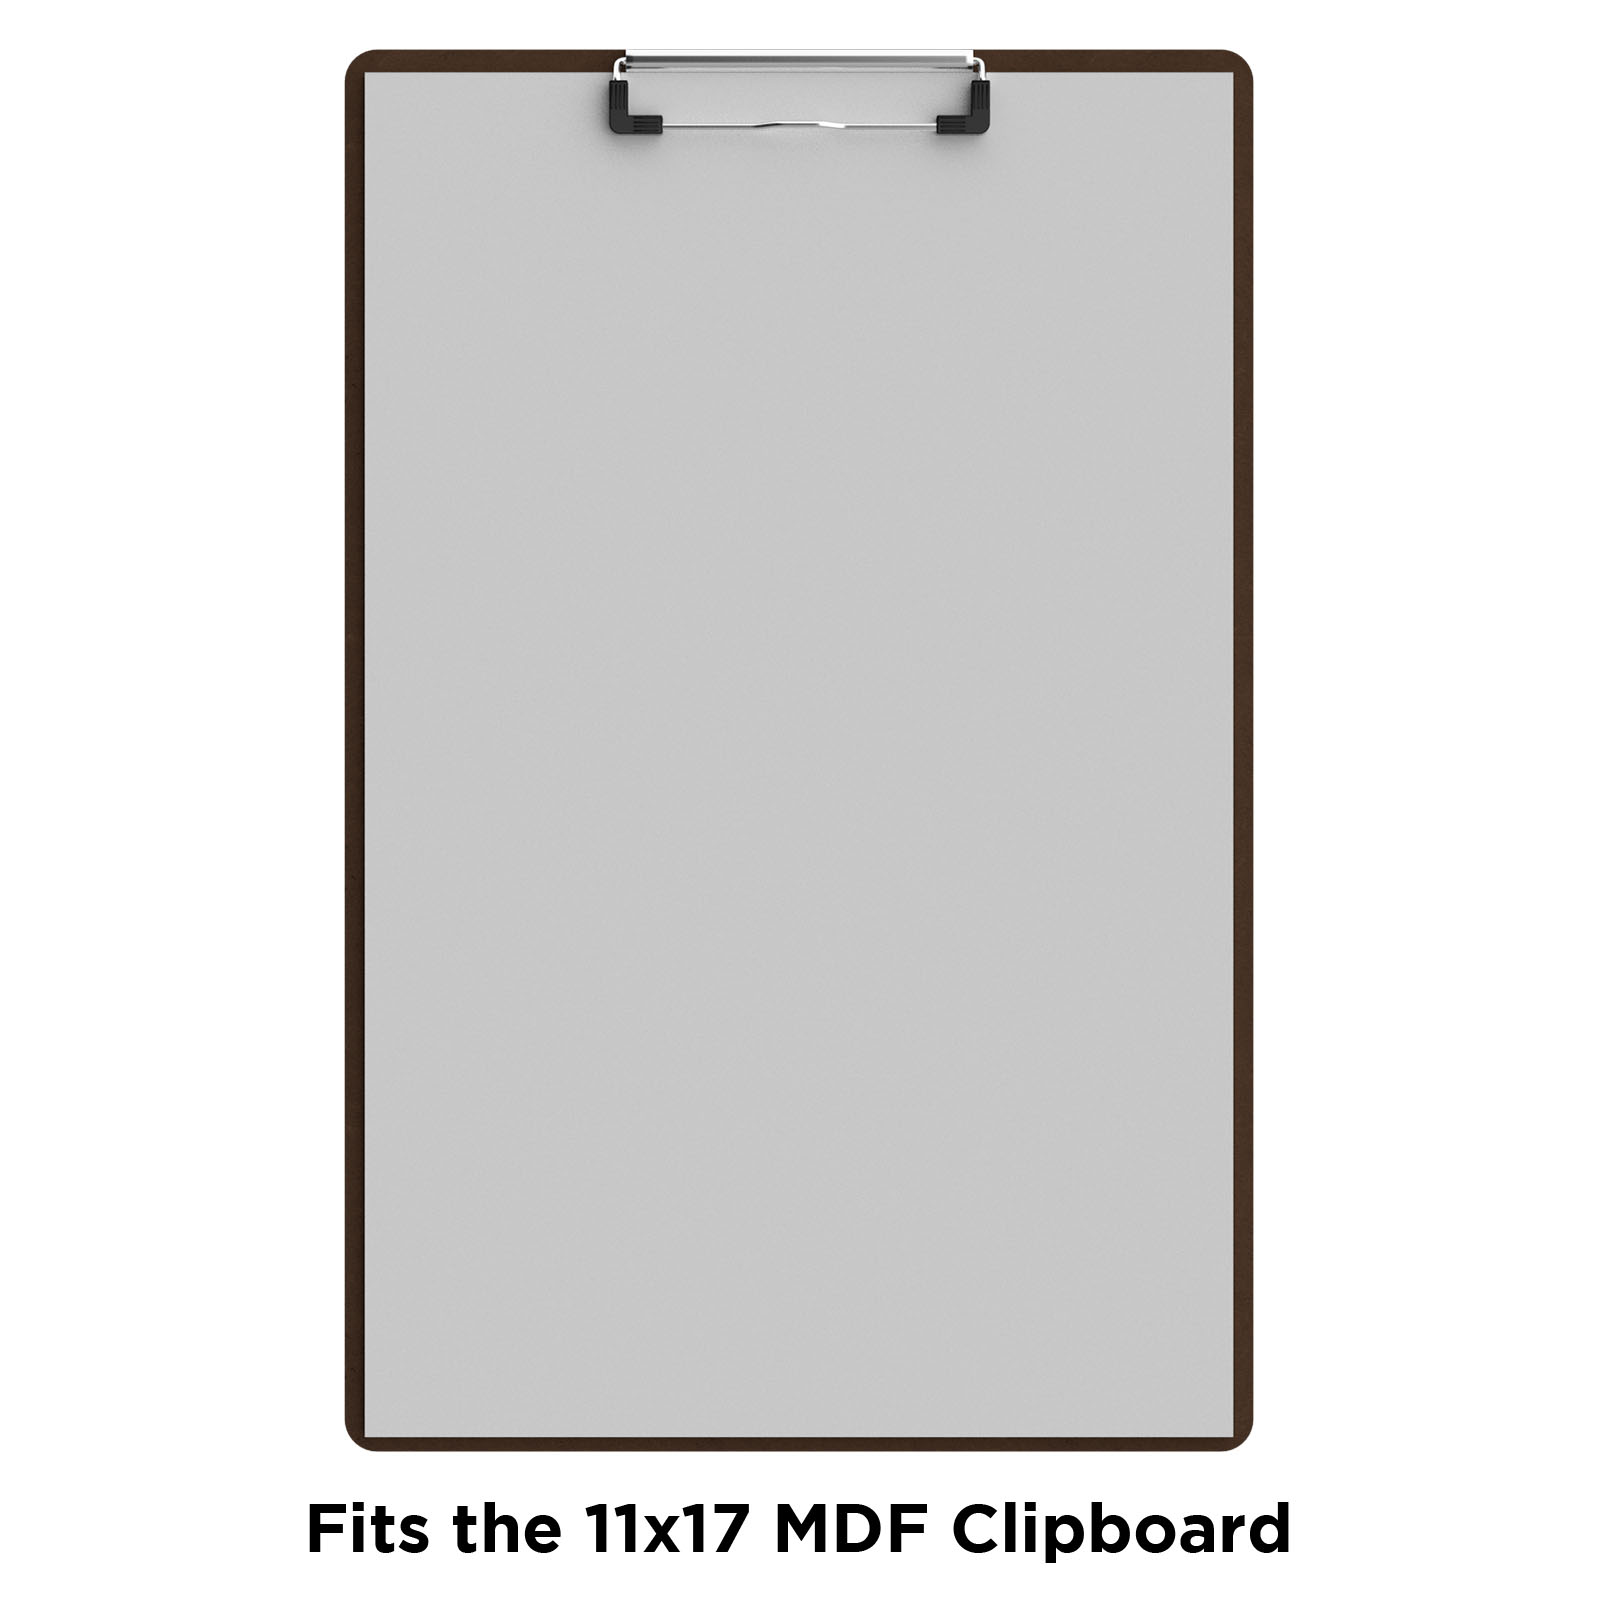 Vertical 17 X 11 Mdf Clipboard Notepad Blank